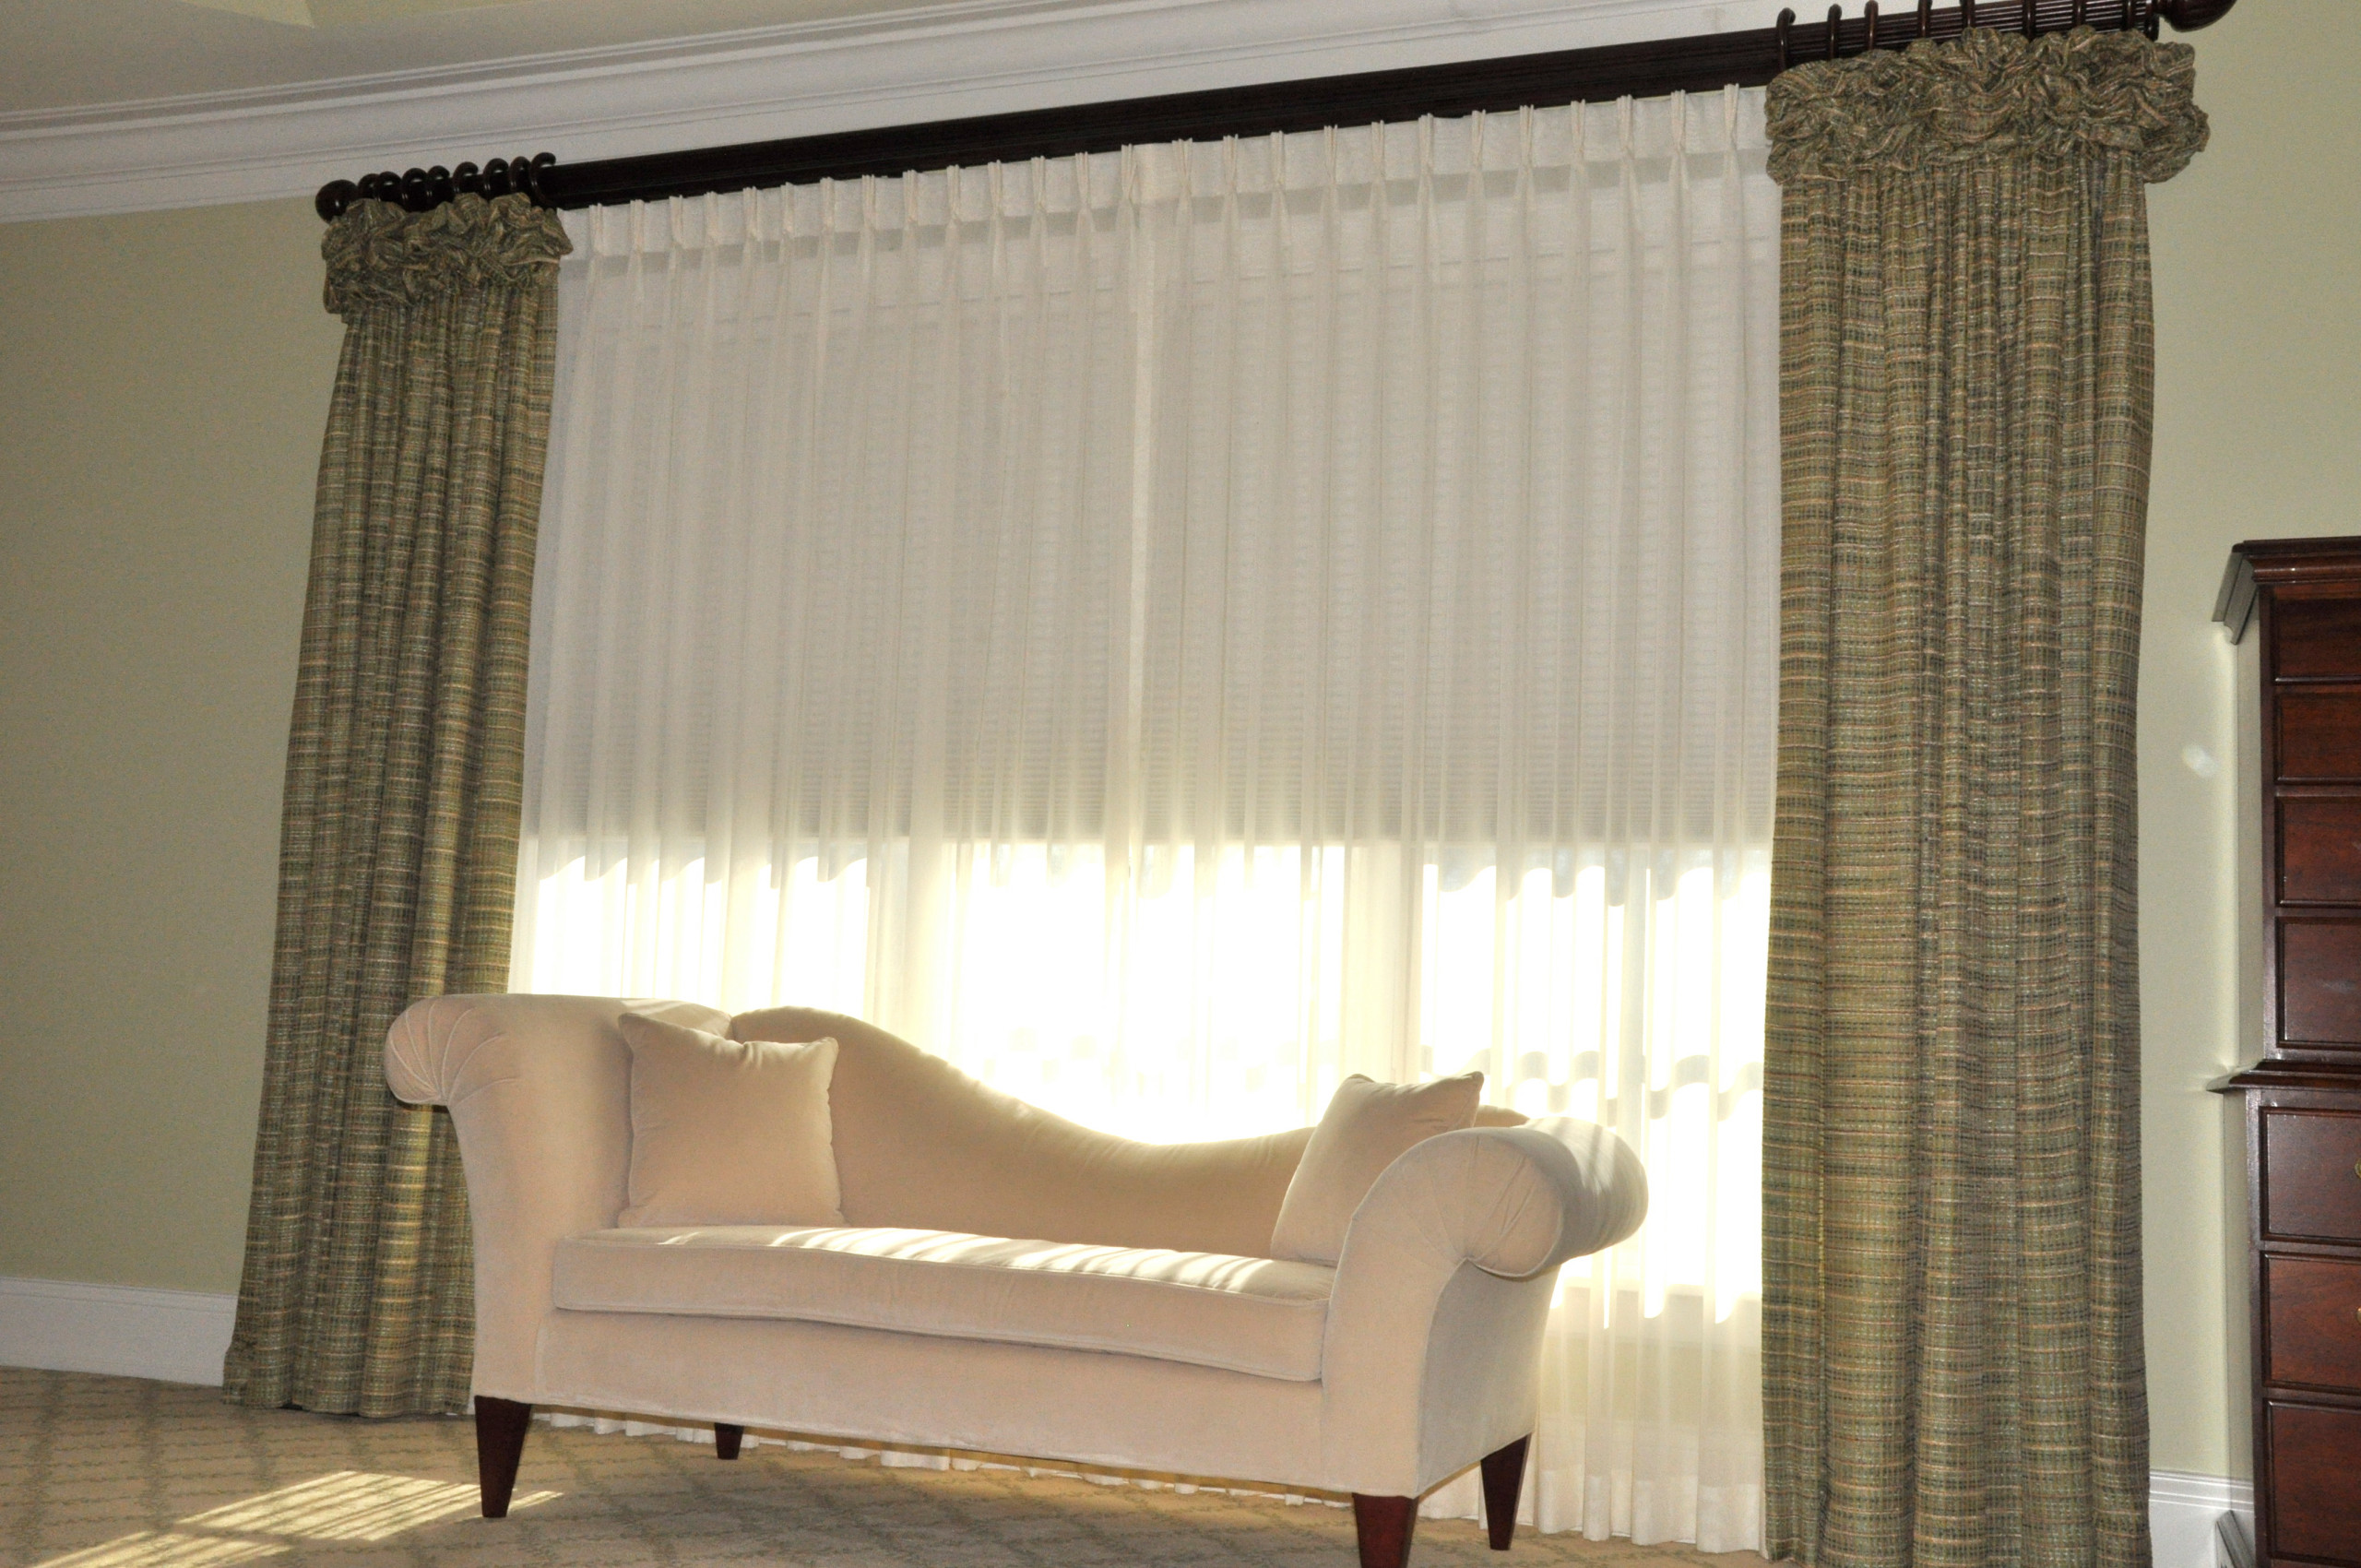 Drapes and Bedding